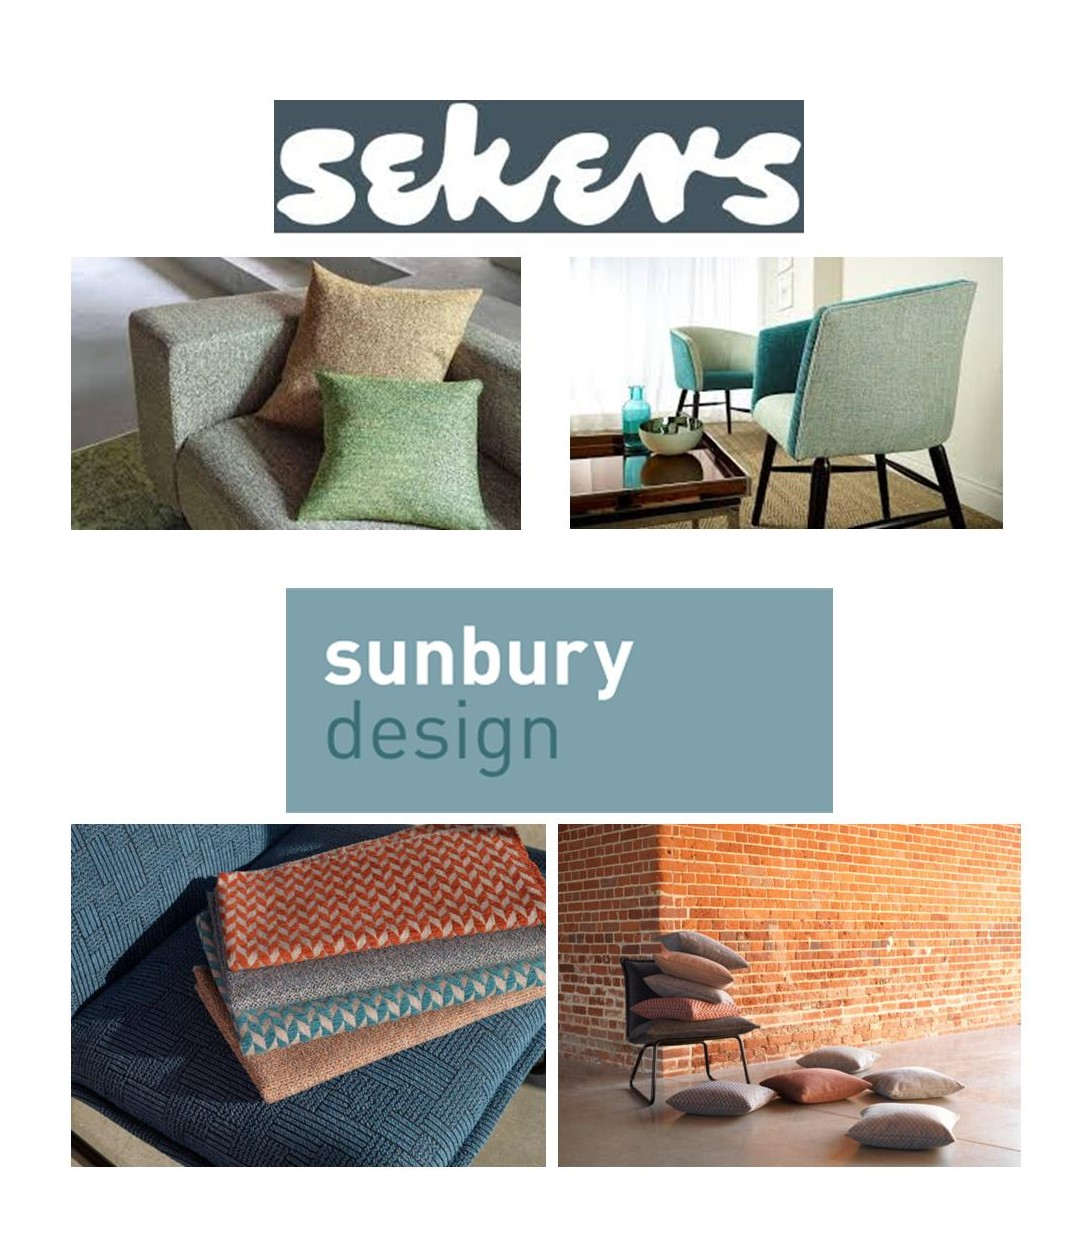 Sekers- Sunbury Design